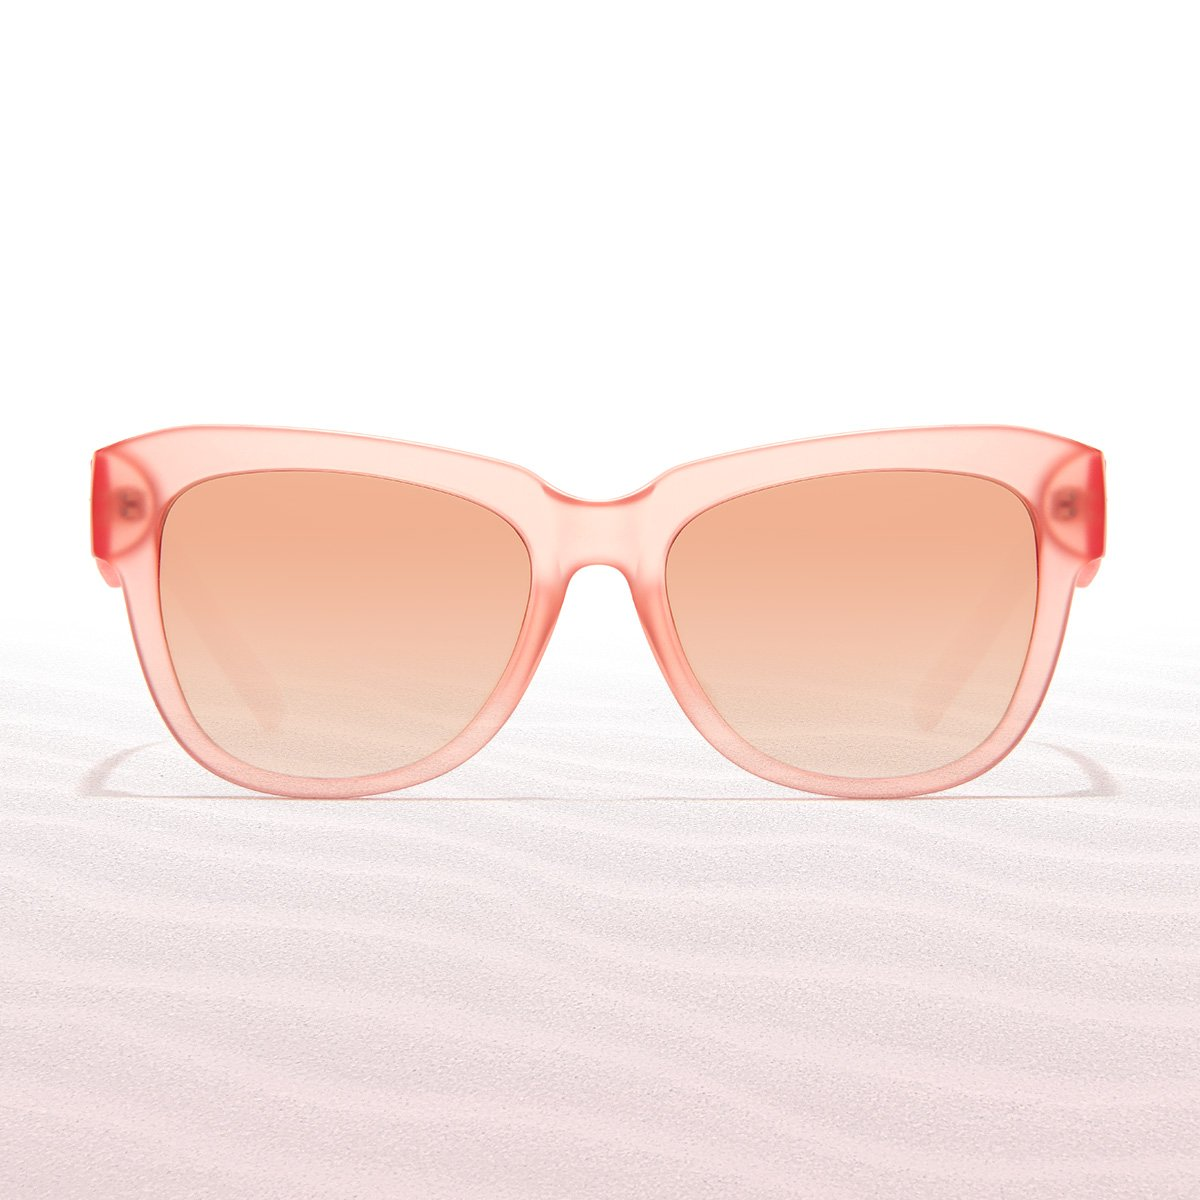 Zenni On Twitter Pantone Color Of The Year Living Coral